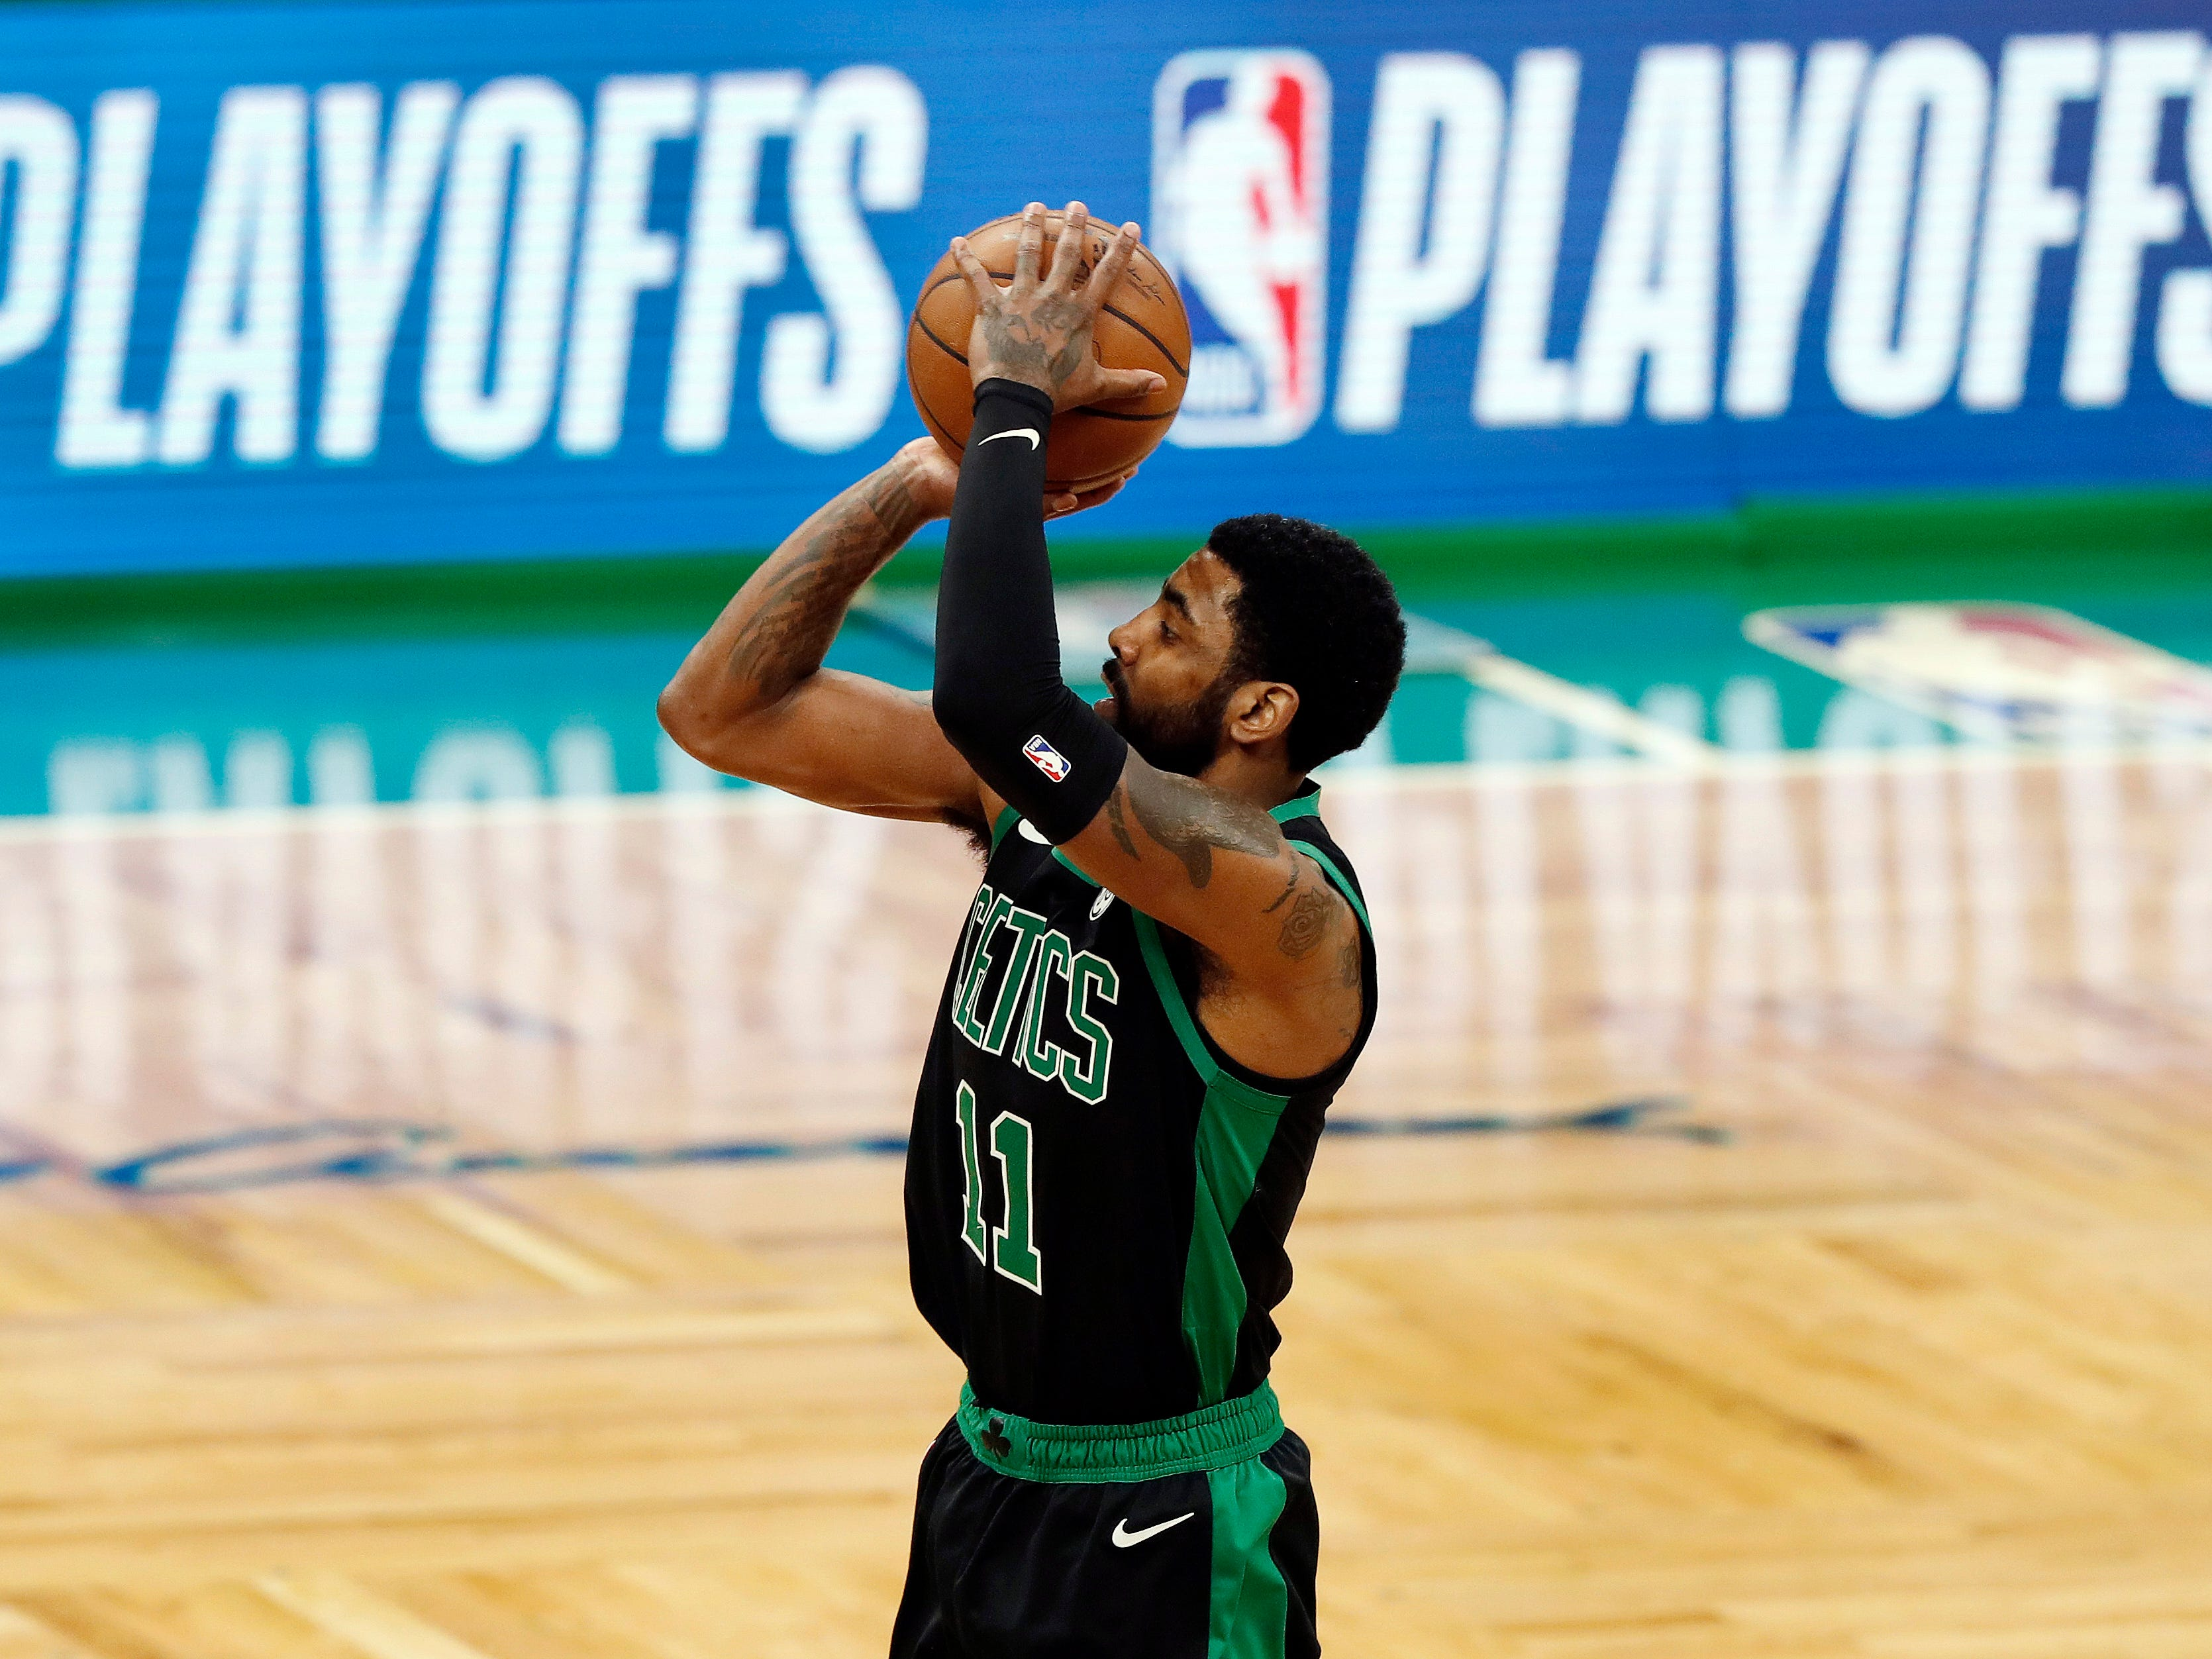 Boston Celtics' Kyrie Irving shoots against the Indiana Pacers during the first quarter in Game 1 of a first-round NBA basketball playoff series, Sunday, April 14, 2019, in Boston.